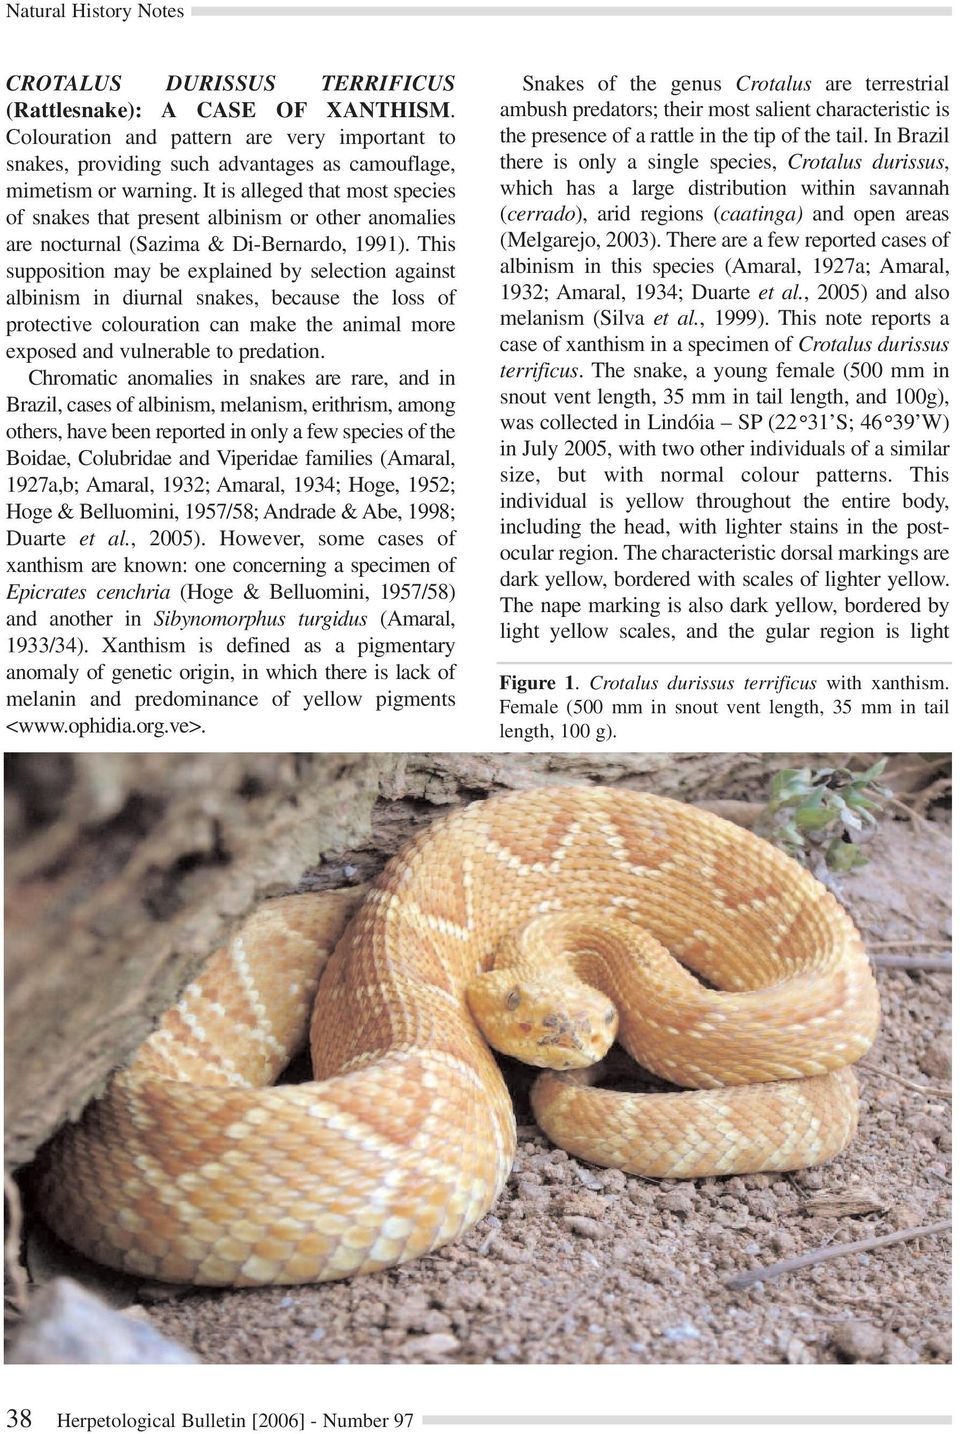 This supposition may be explained by selection against albinism in diurnal snakes, because the loss of protective colouration can make the animal more exposed and vulnerable to predation.